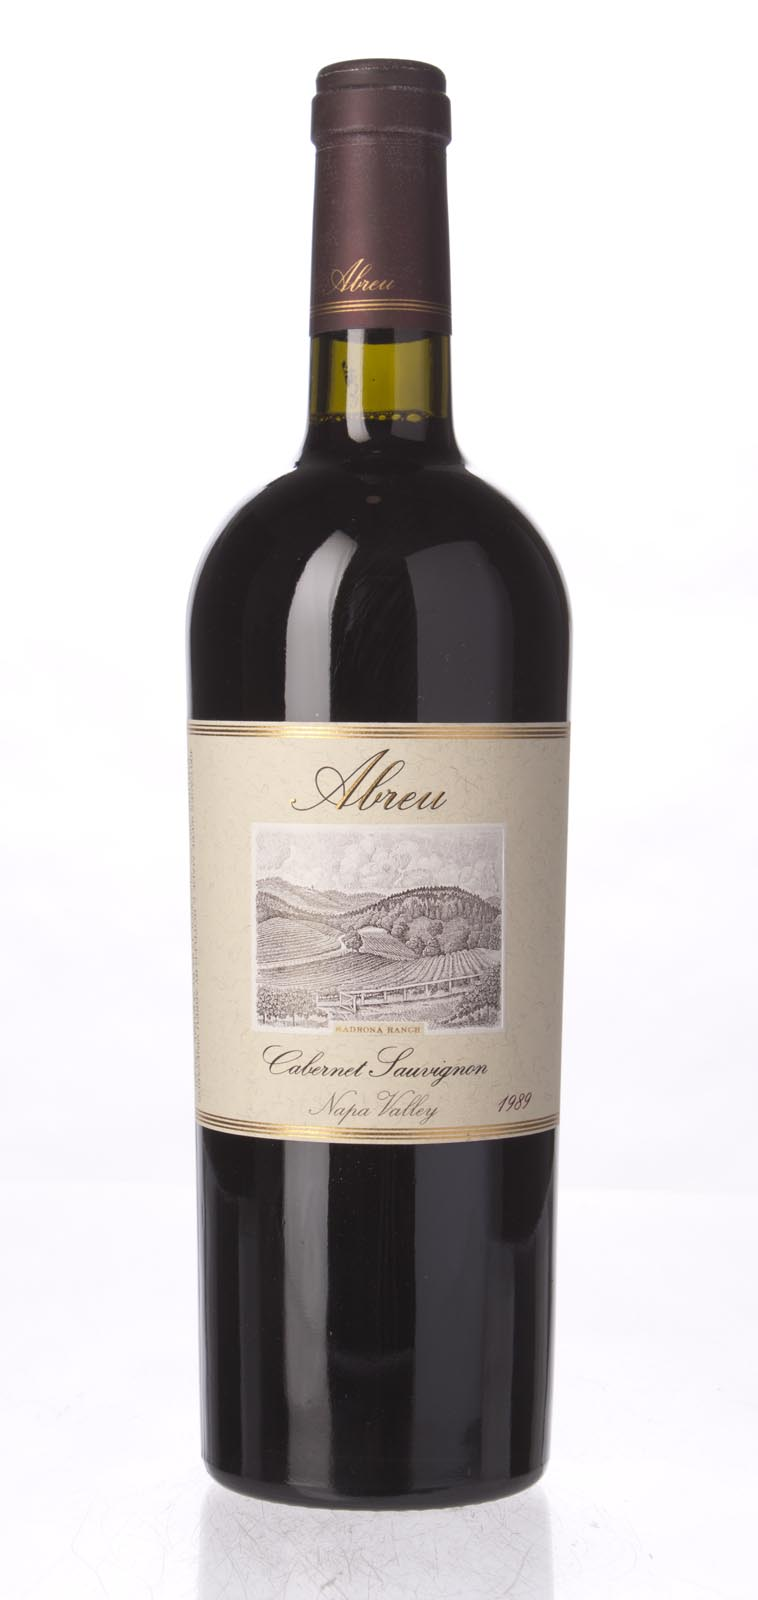 Abreu Cabernet Sauvignon Madrona Ranch 1989, 750mL (WS91) from The BPW - Merchants of rare and fine wines.